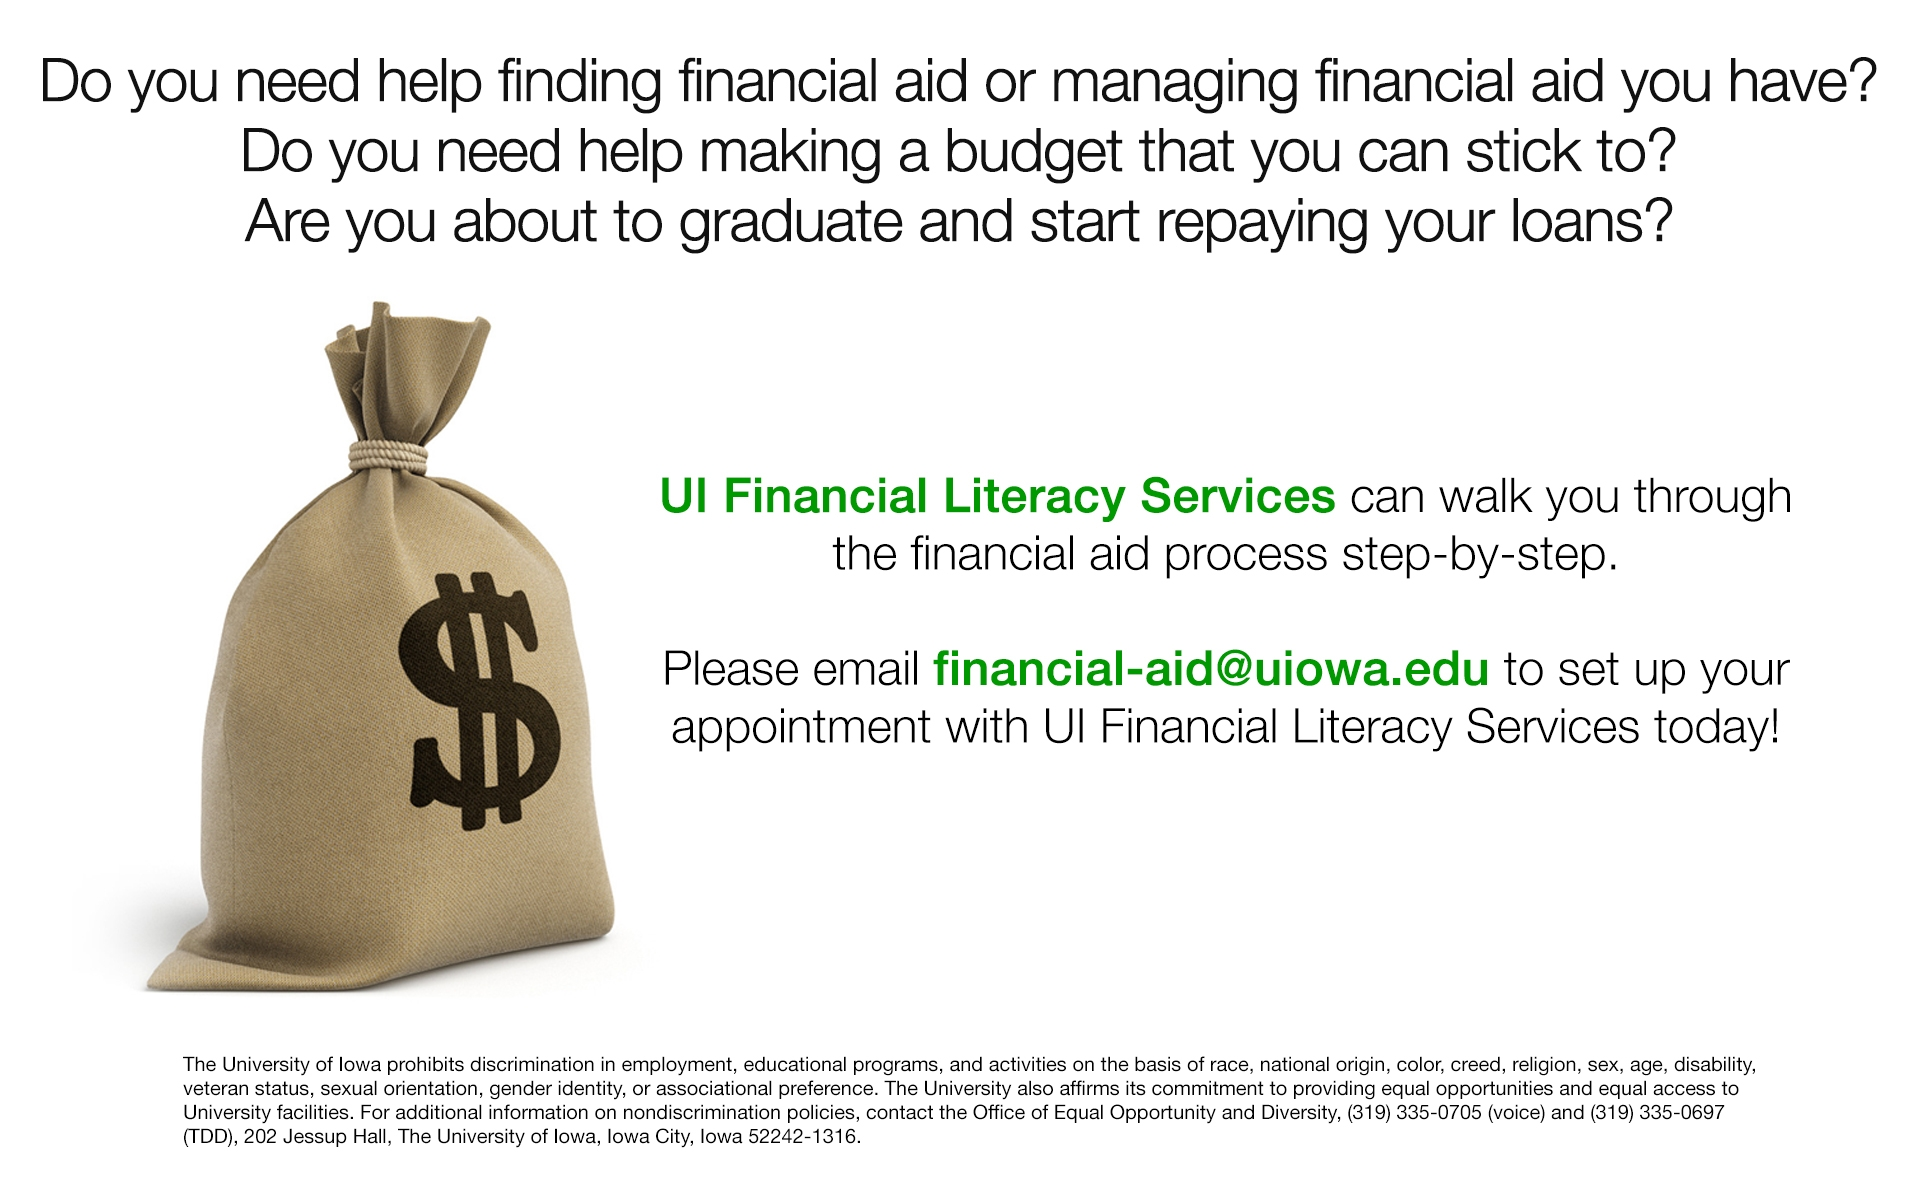 UI Financial Literacy Services can walk you through the financial aid process step-by-step. Please email financial-aid@uiowa.edu to set up your appointment with UI Financial Literacy Services today!